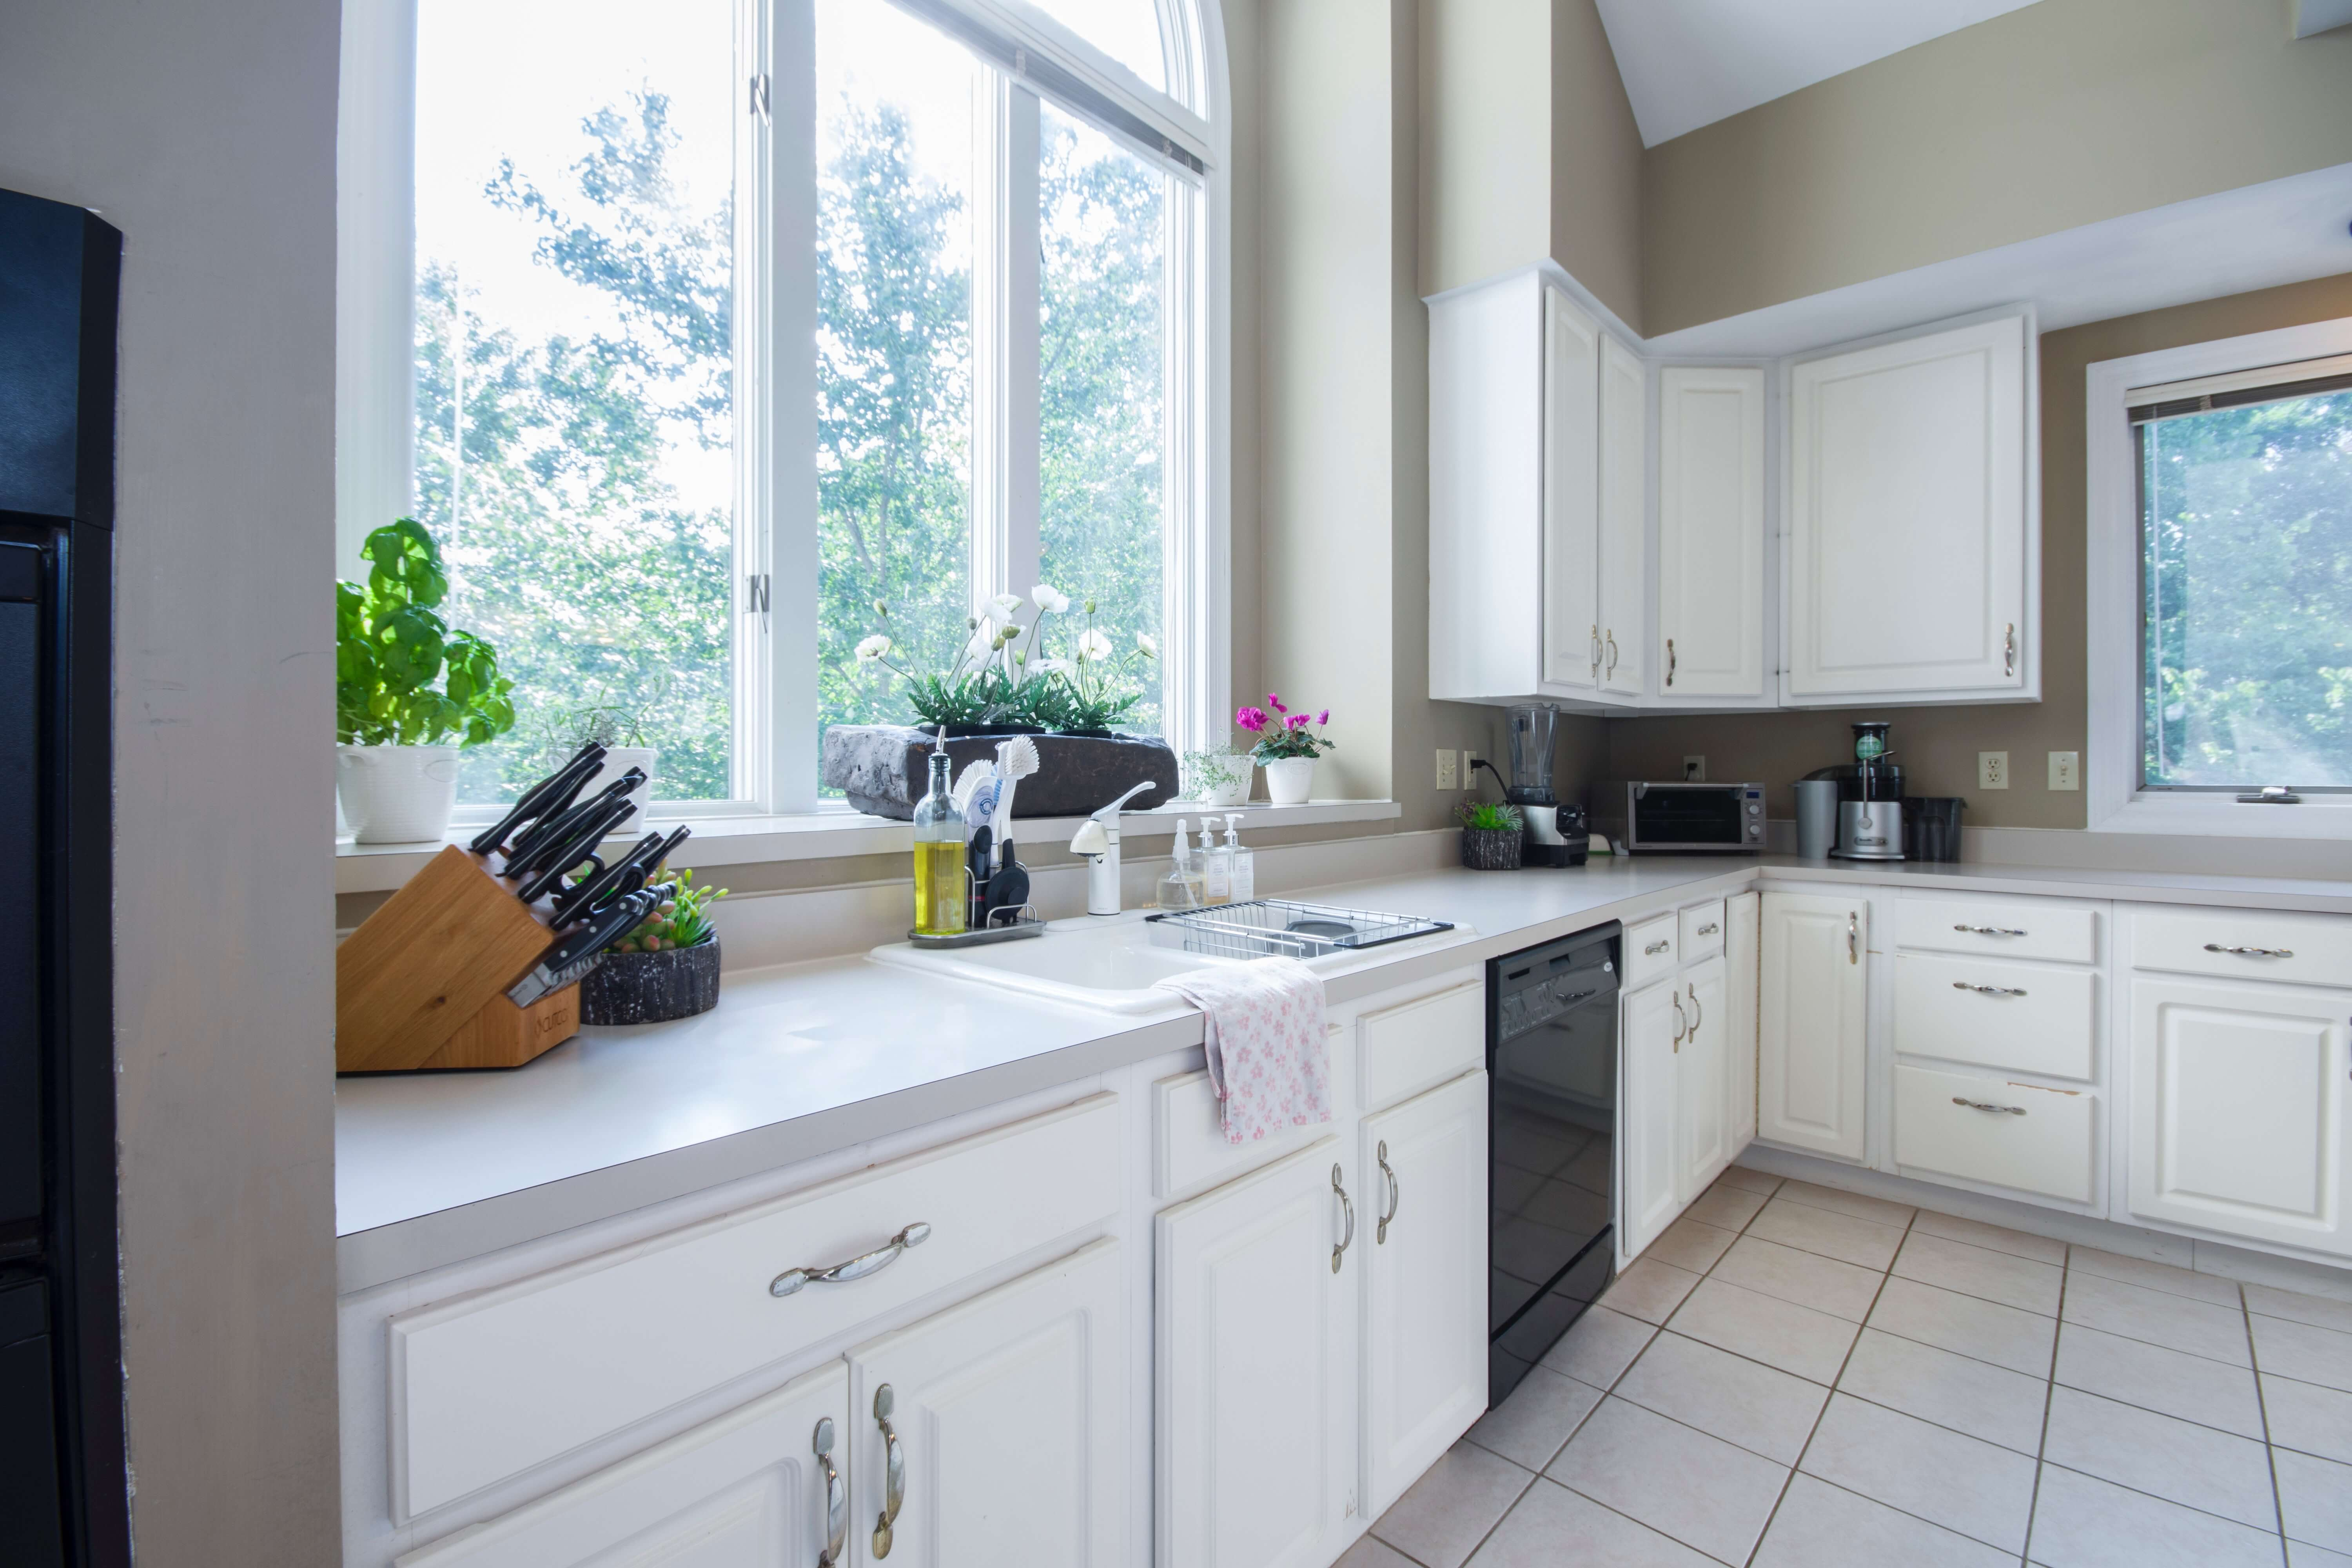 Restorations Windows with custom geometric designs let in ample light to any kitchen